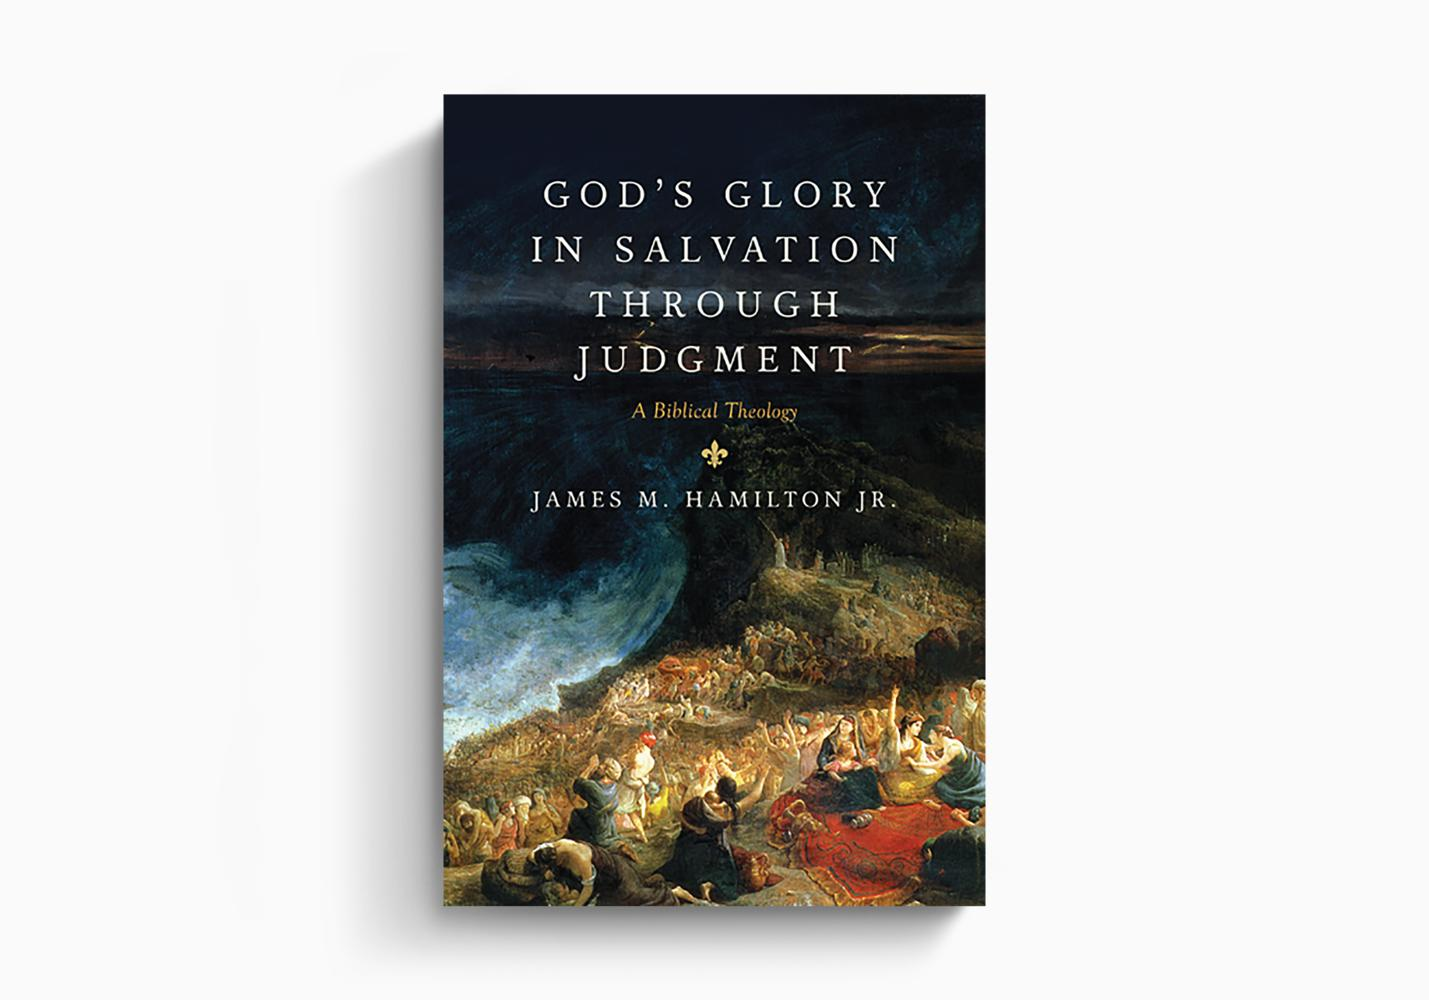 God's Glory in Salvation through Judgment